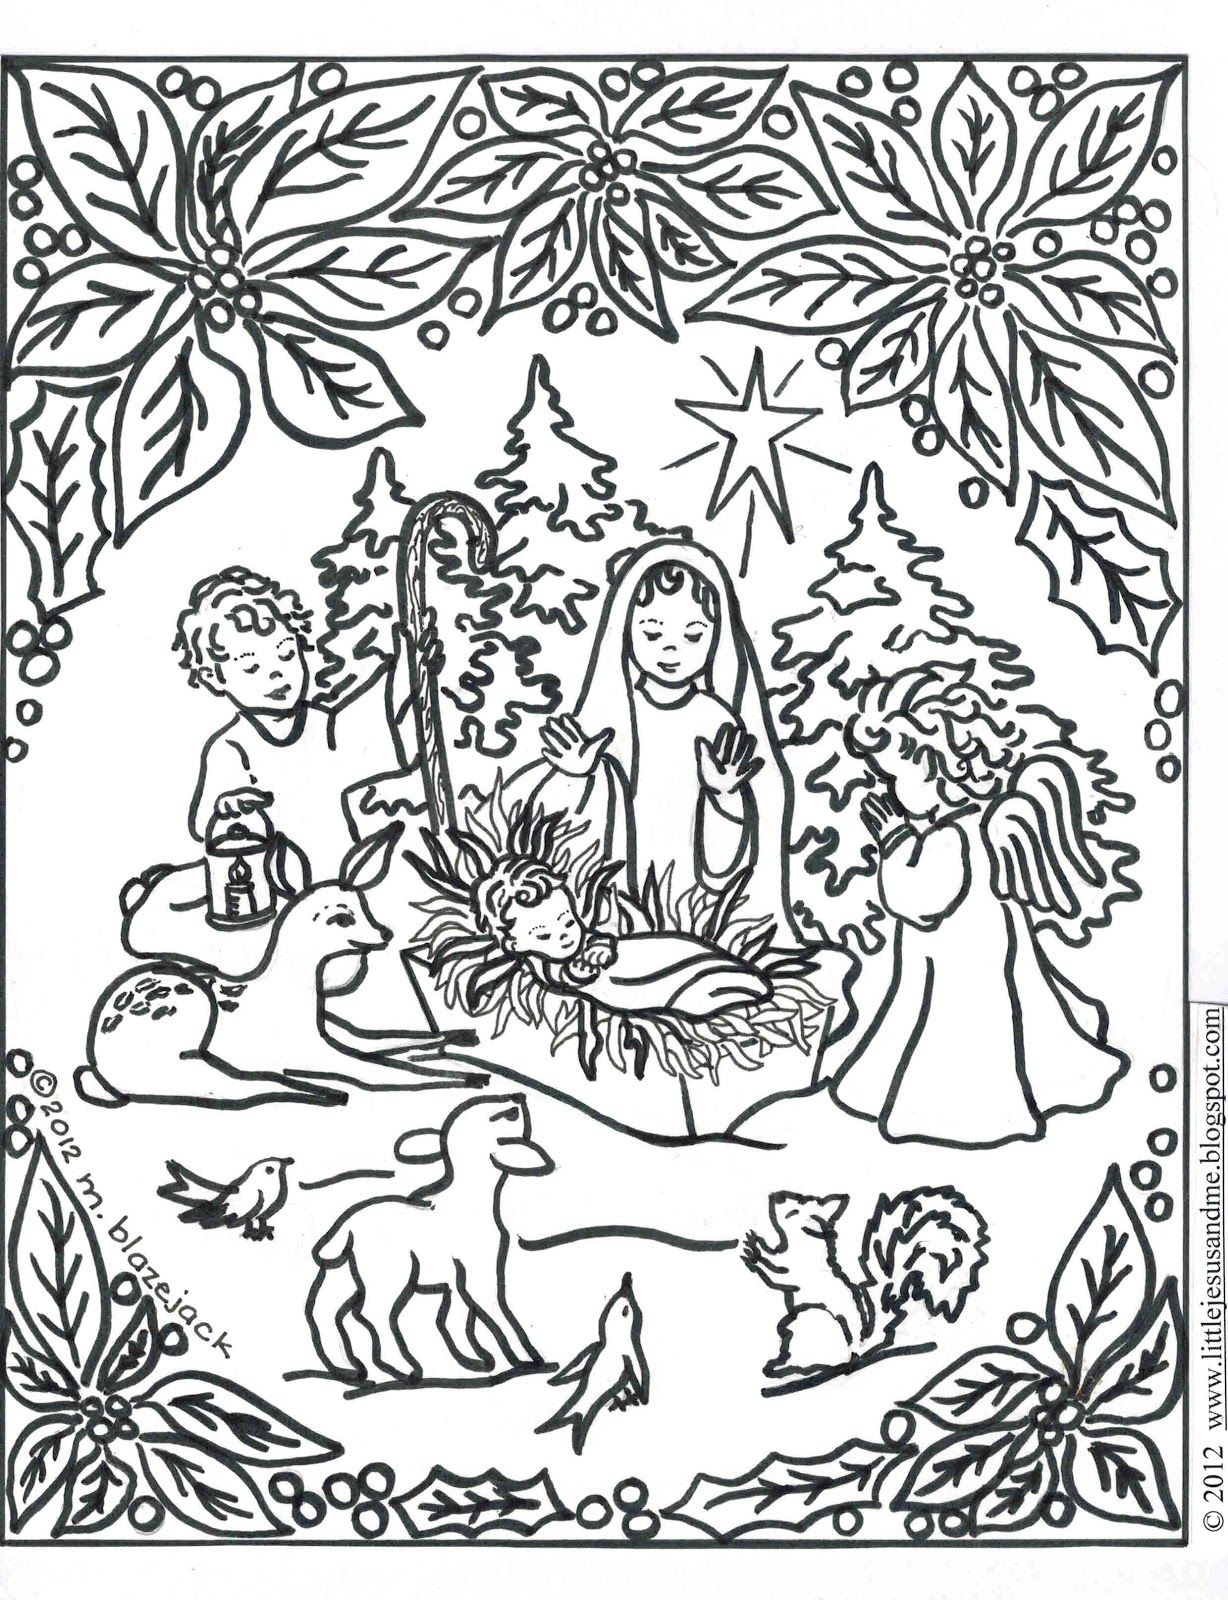 Free coloring pages nativity scene - Jesus And Nativity Coloring Page